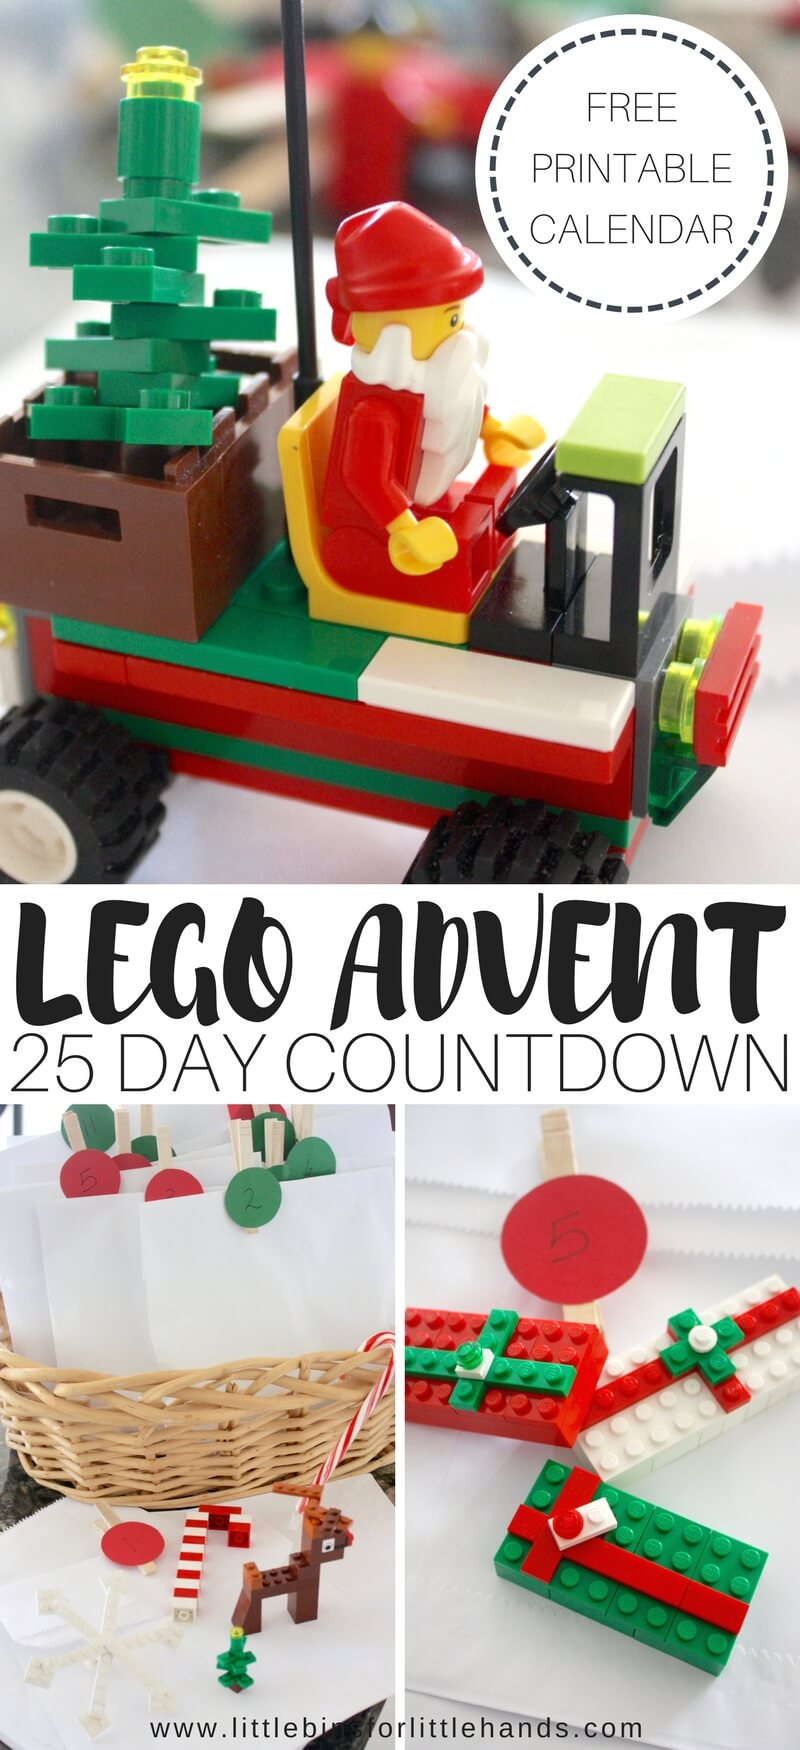 Lego Advent Calendar Ideas : Lego advent calendar diy christmas countdown